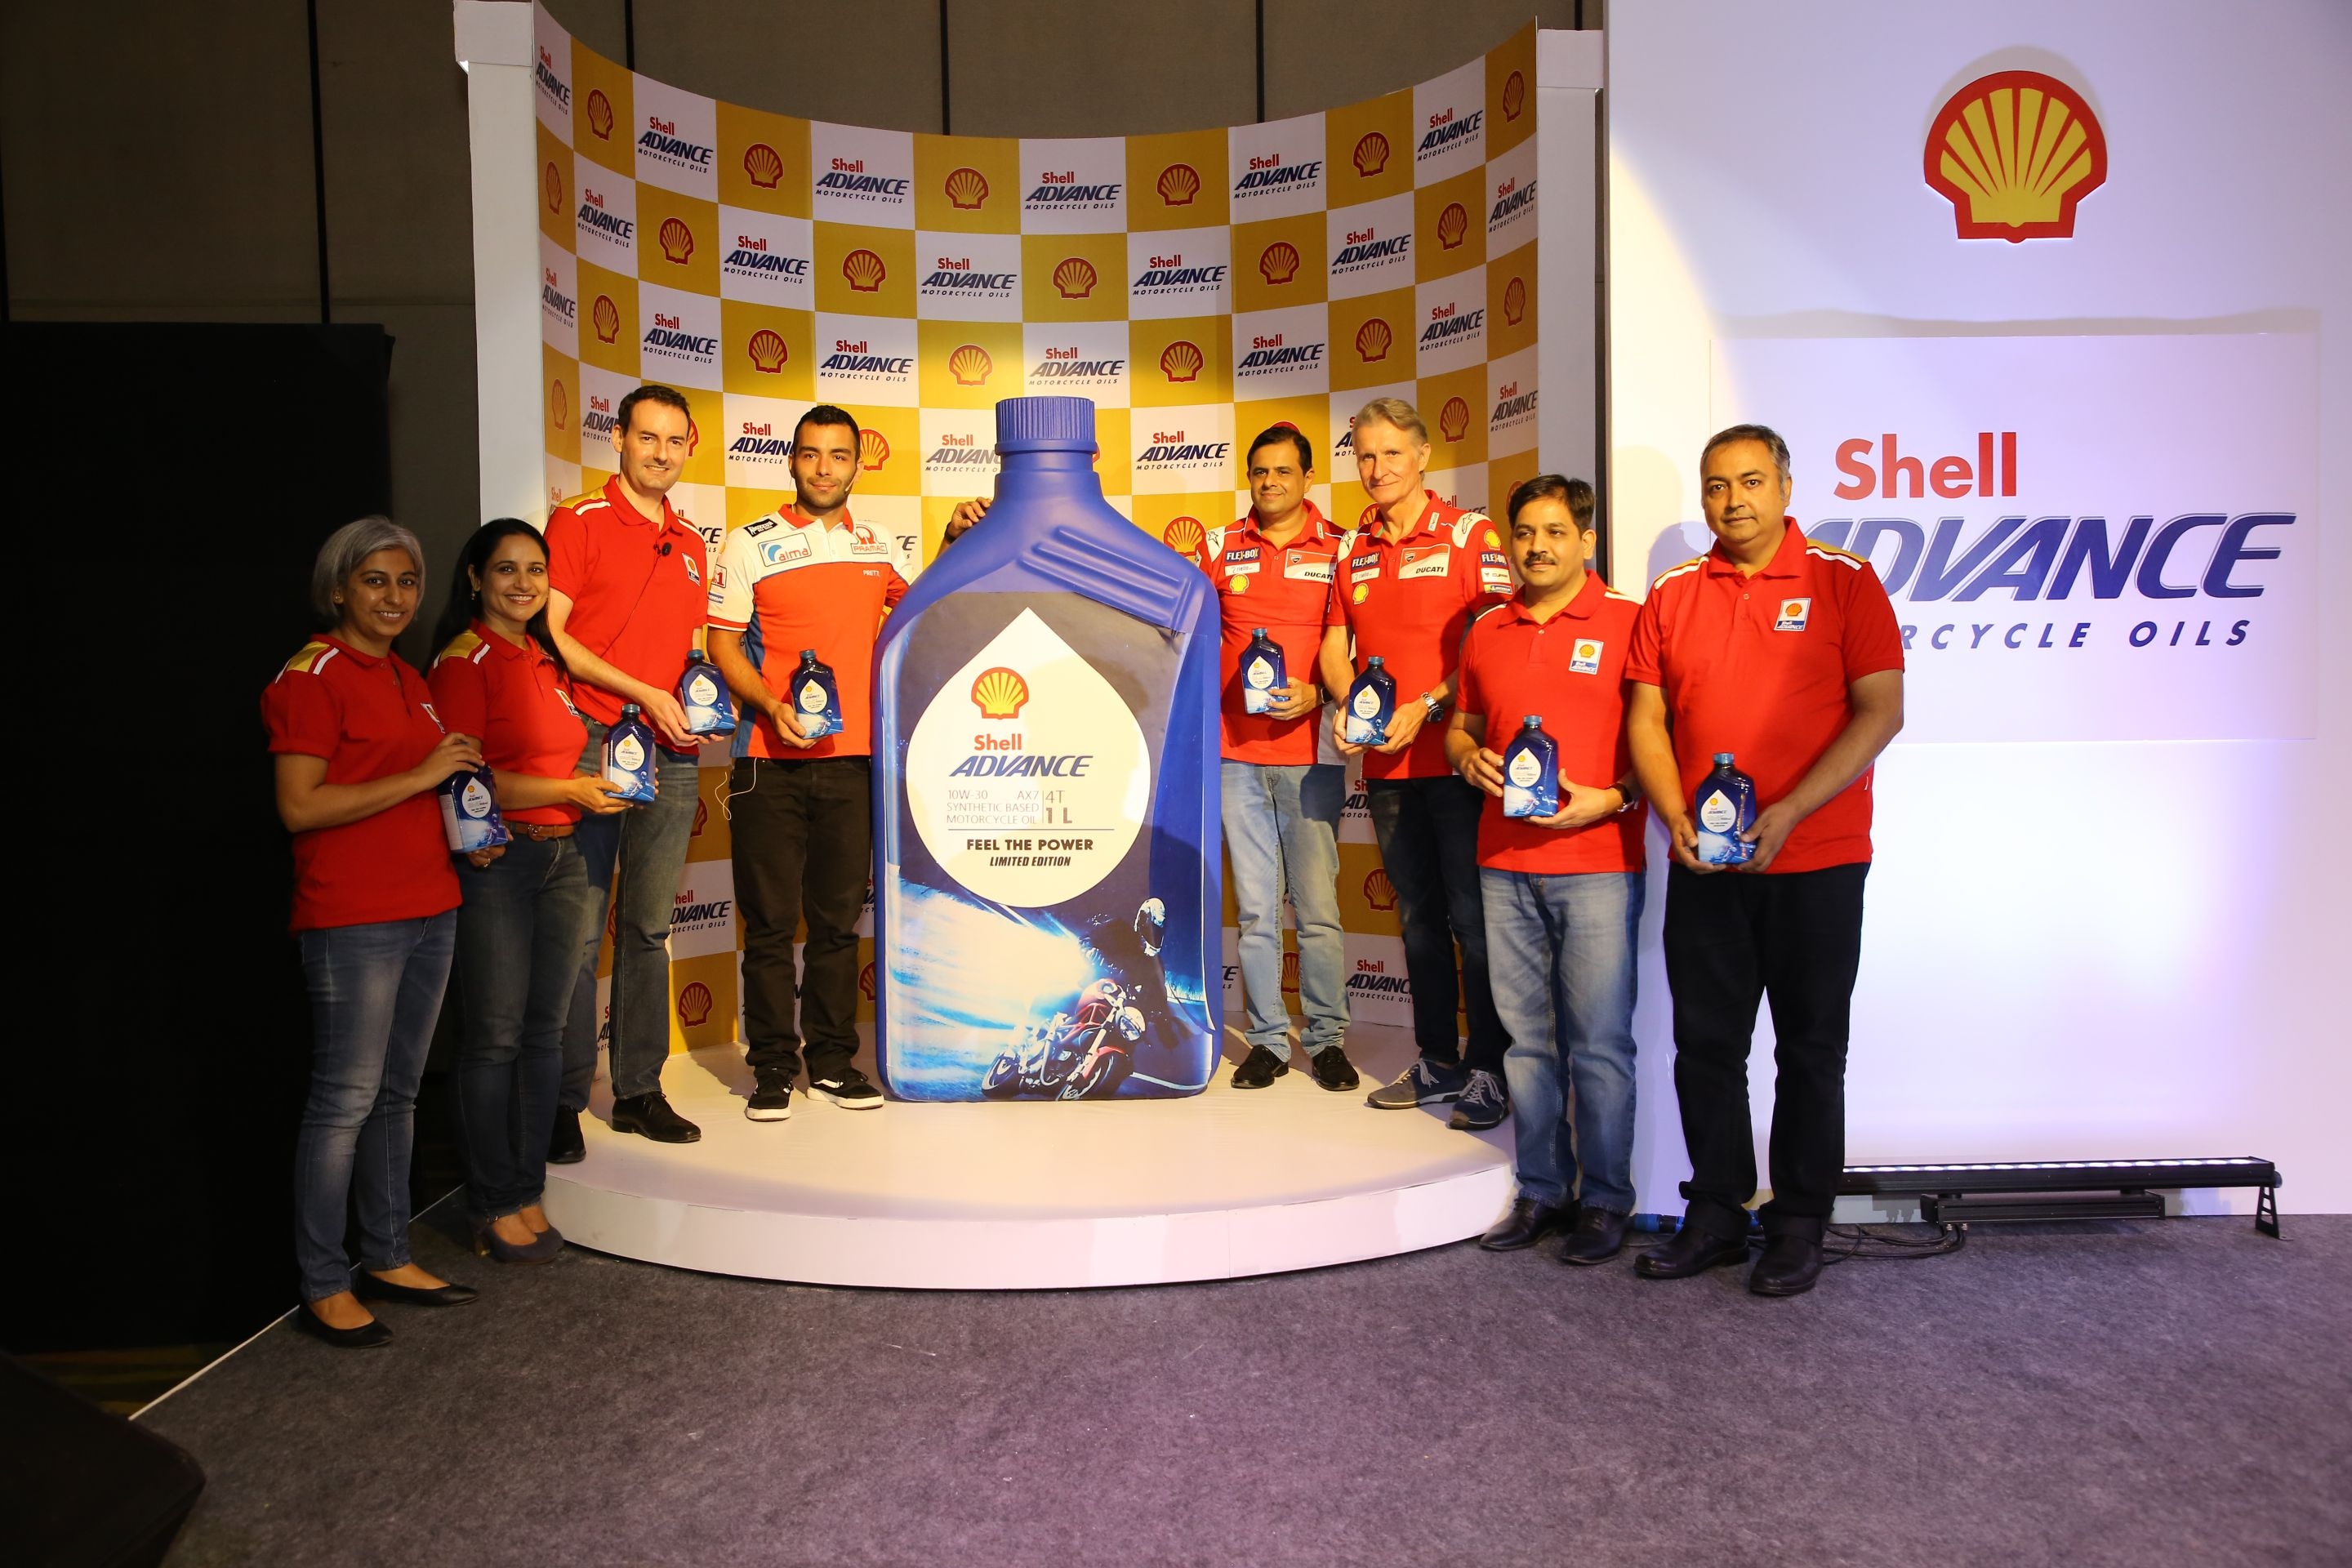 Shell Product Launch, Delhi